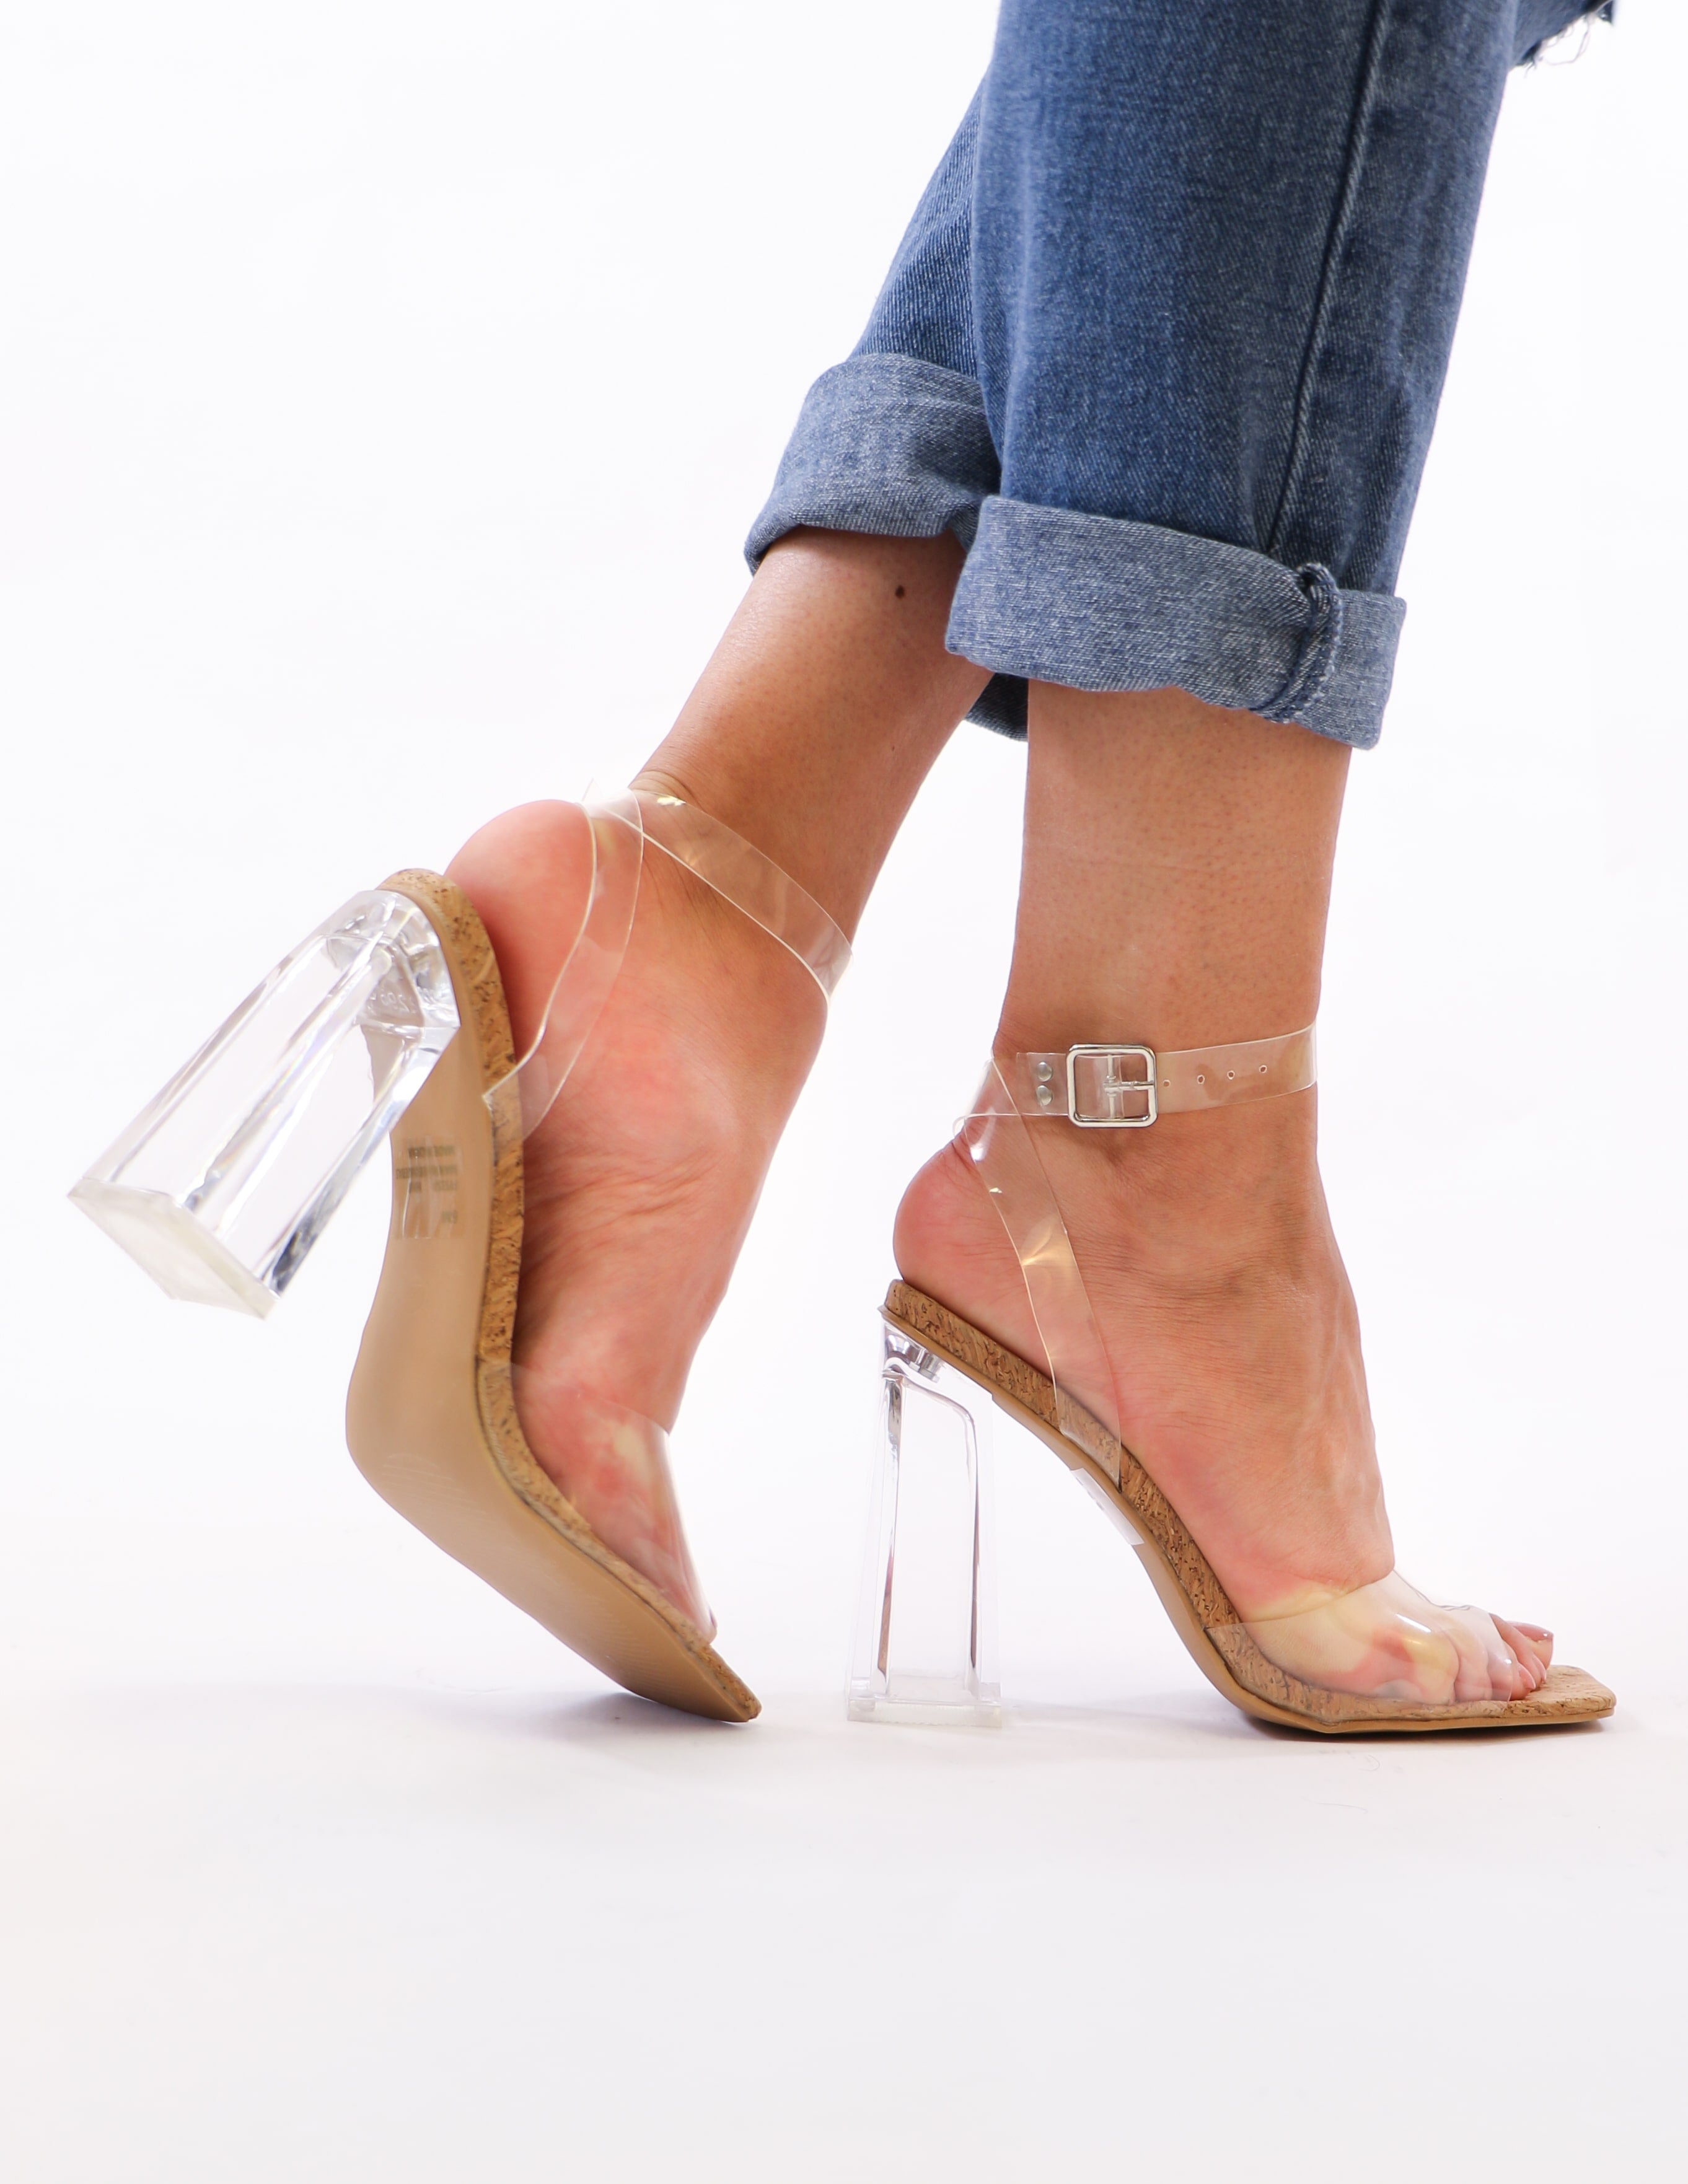 clear your schedule heel on model - elle bleu shoes